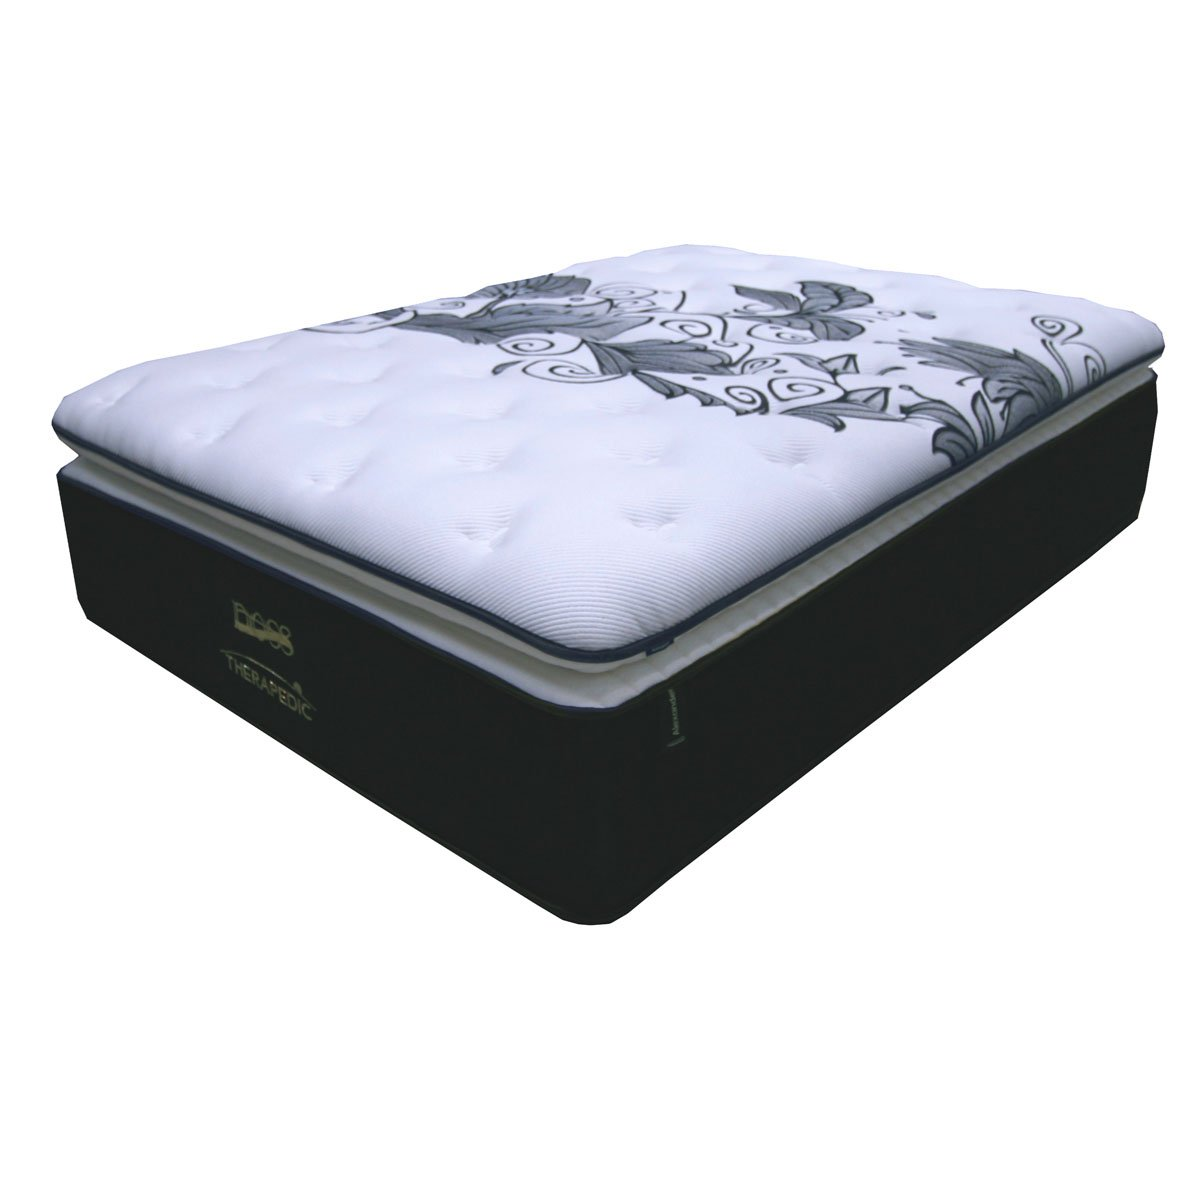 Colch n king size alexander therapedic sears com mx me entiende - Colchones spring ...